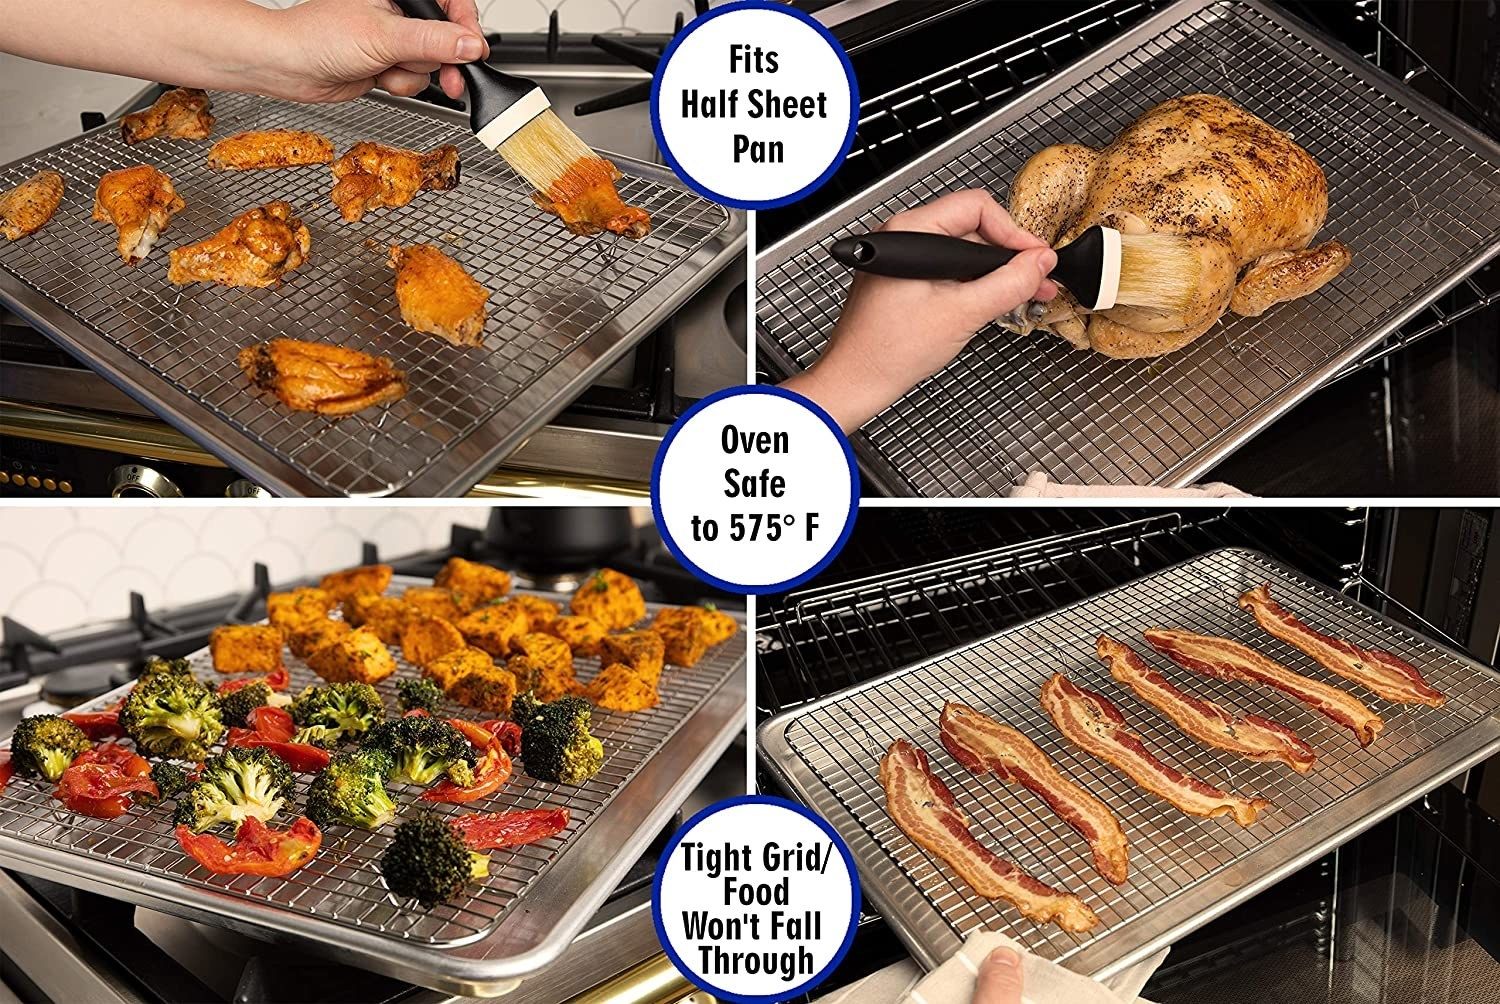 The cooling racks are great for basting chicken, making bacon, and roasting vegetables